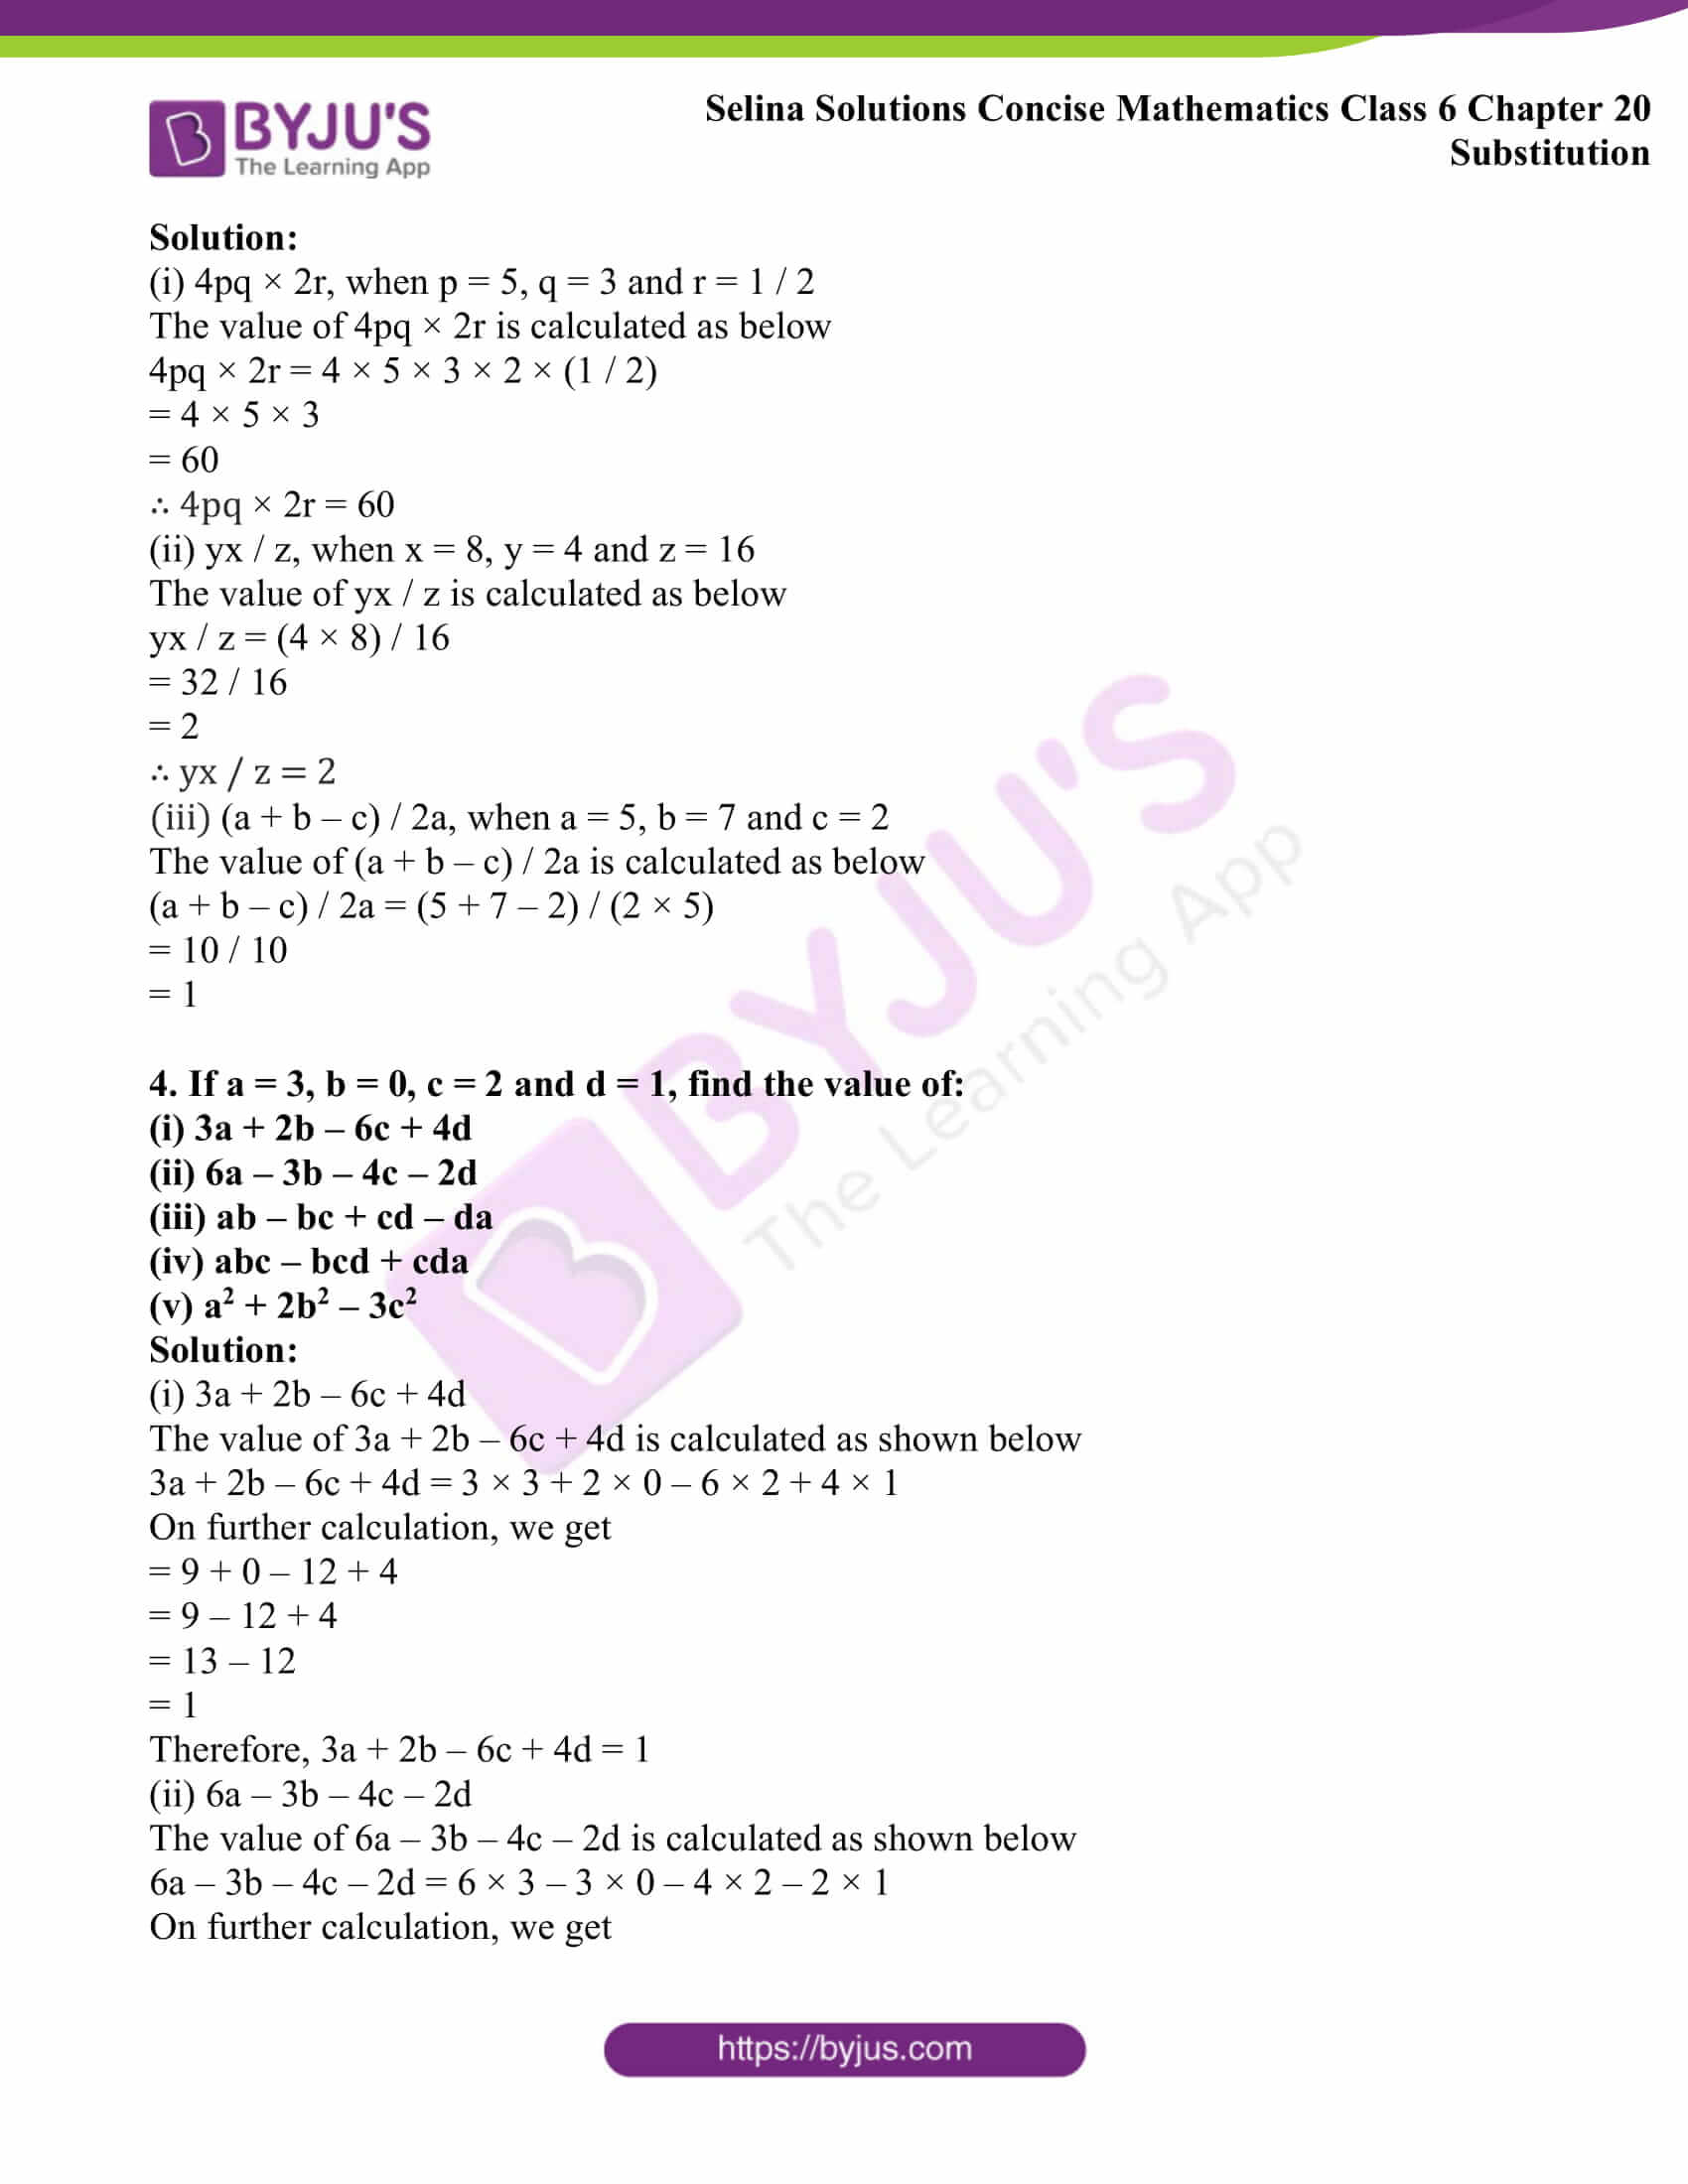 selina solutions concise math class 6 chapter 20 ex a 3